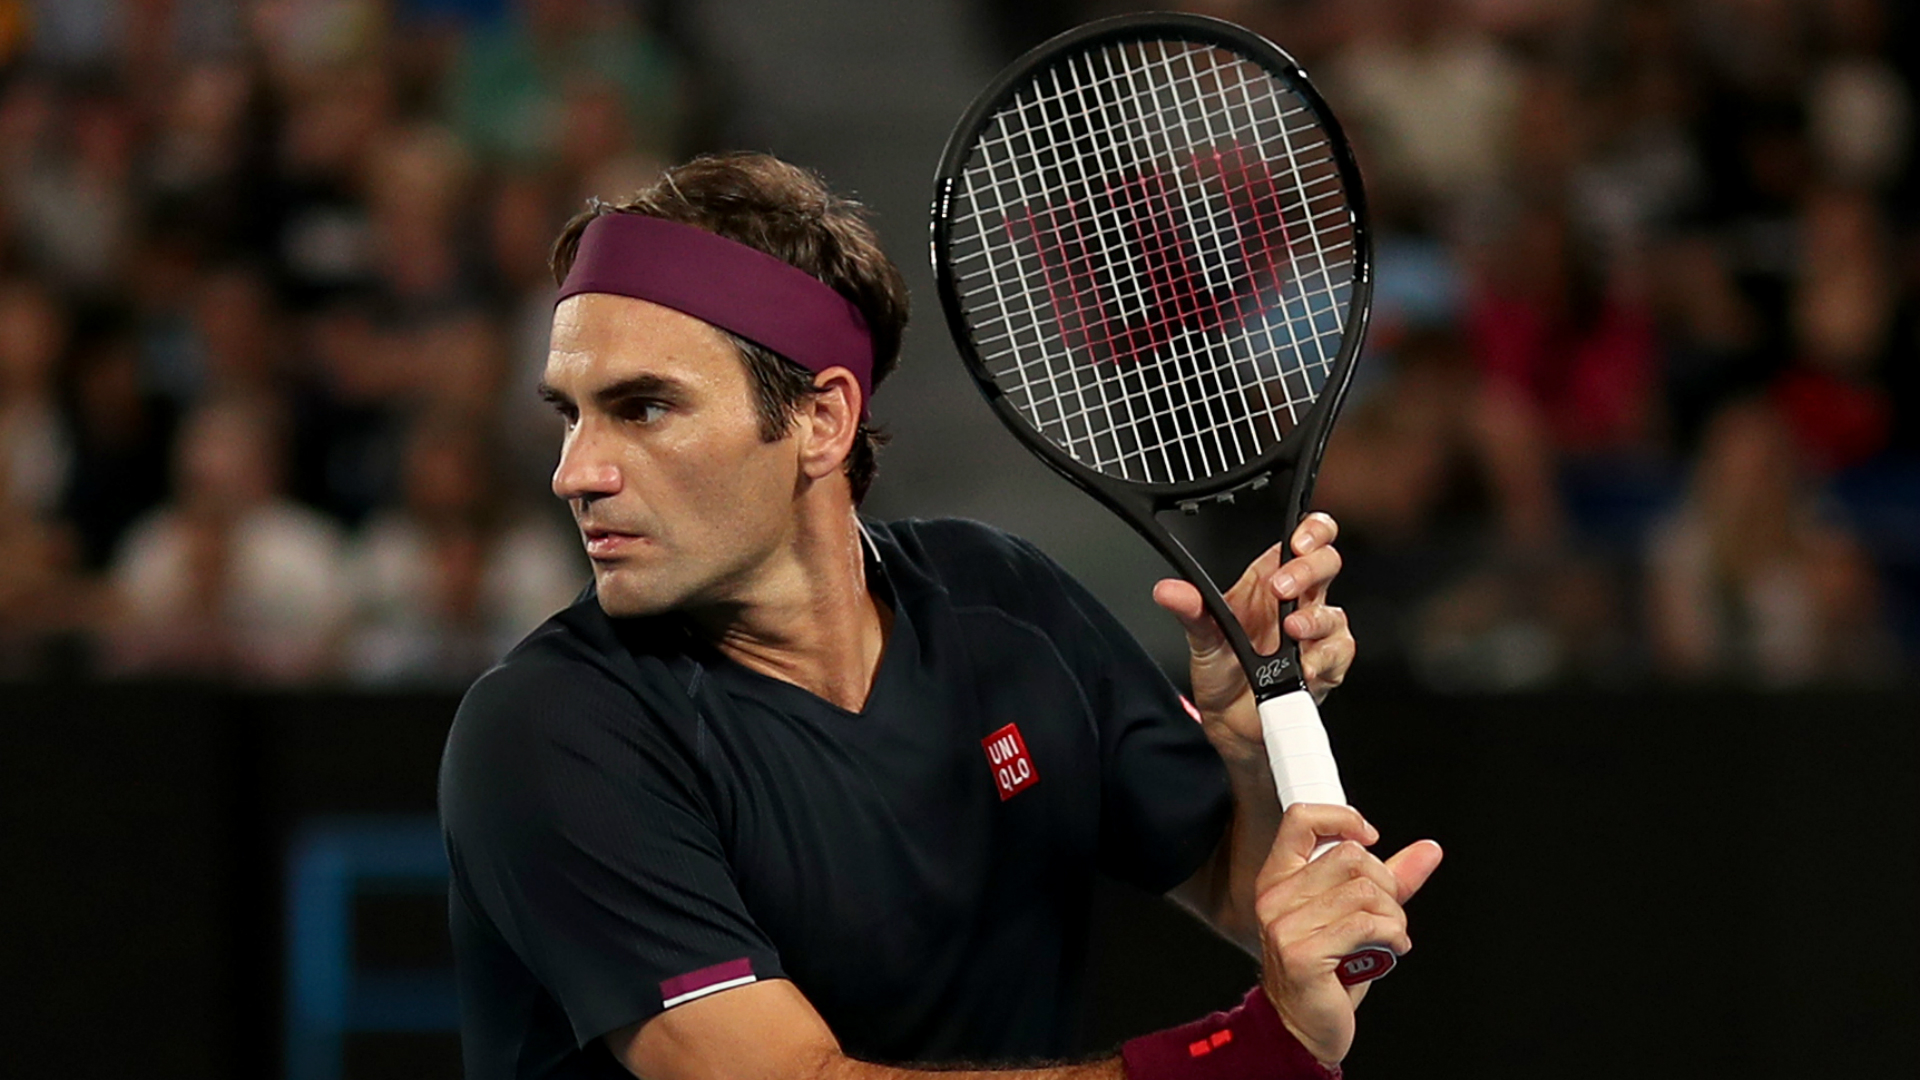 Australian Open 2020: Roger Federer results and form ahead of second-round match with Filip Krajinovic